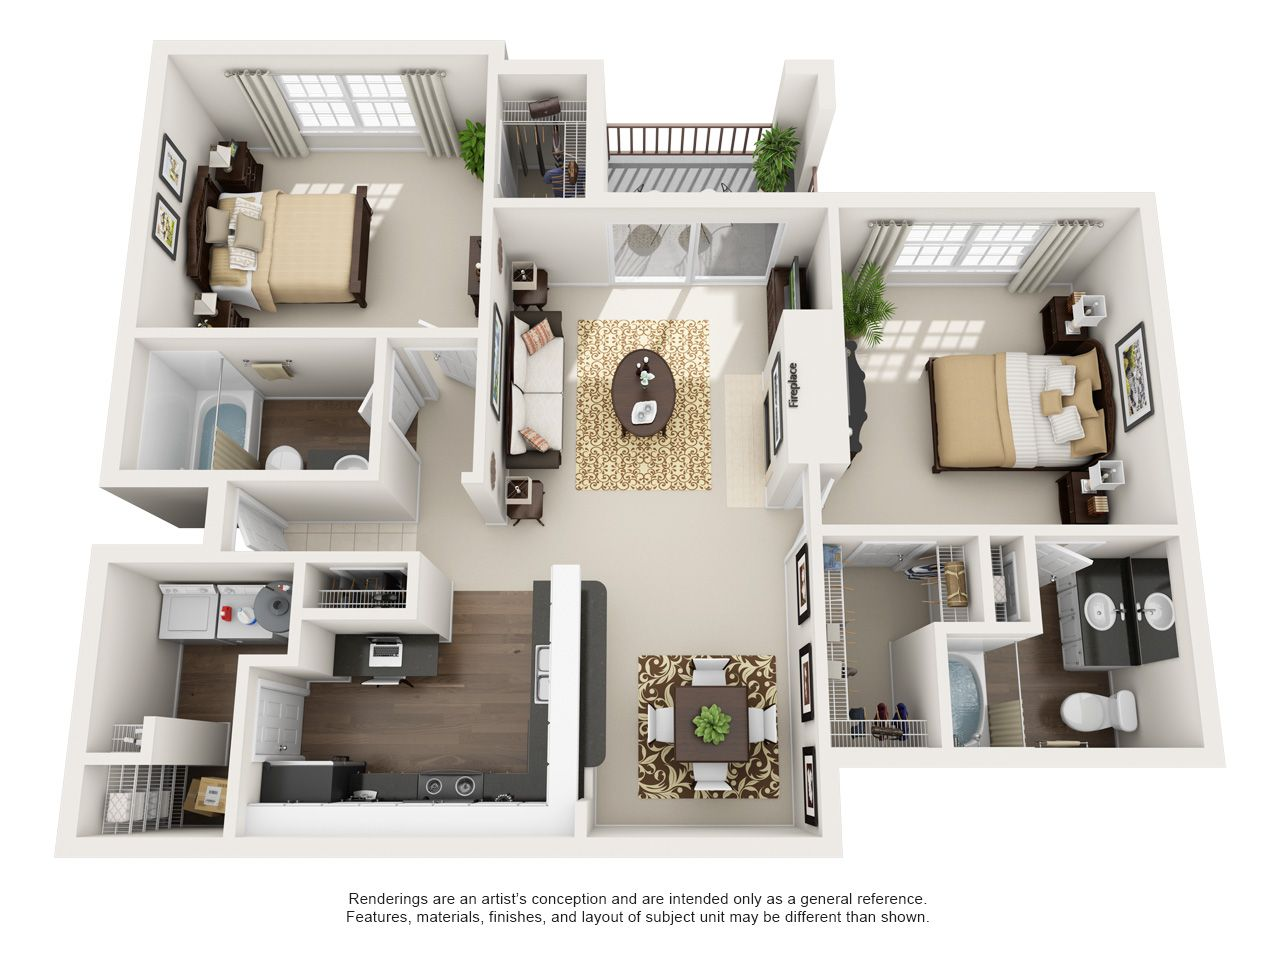 One Two And Three Bedroom Apartments In Euless Tx Euless Texas Apartment Steadfast House Floor Design Tiny House Floor Plans Apartment Layout